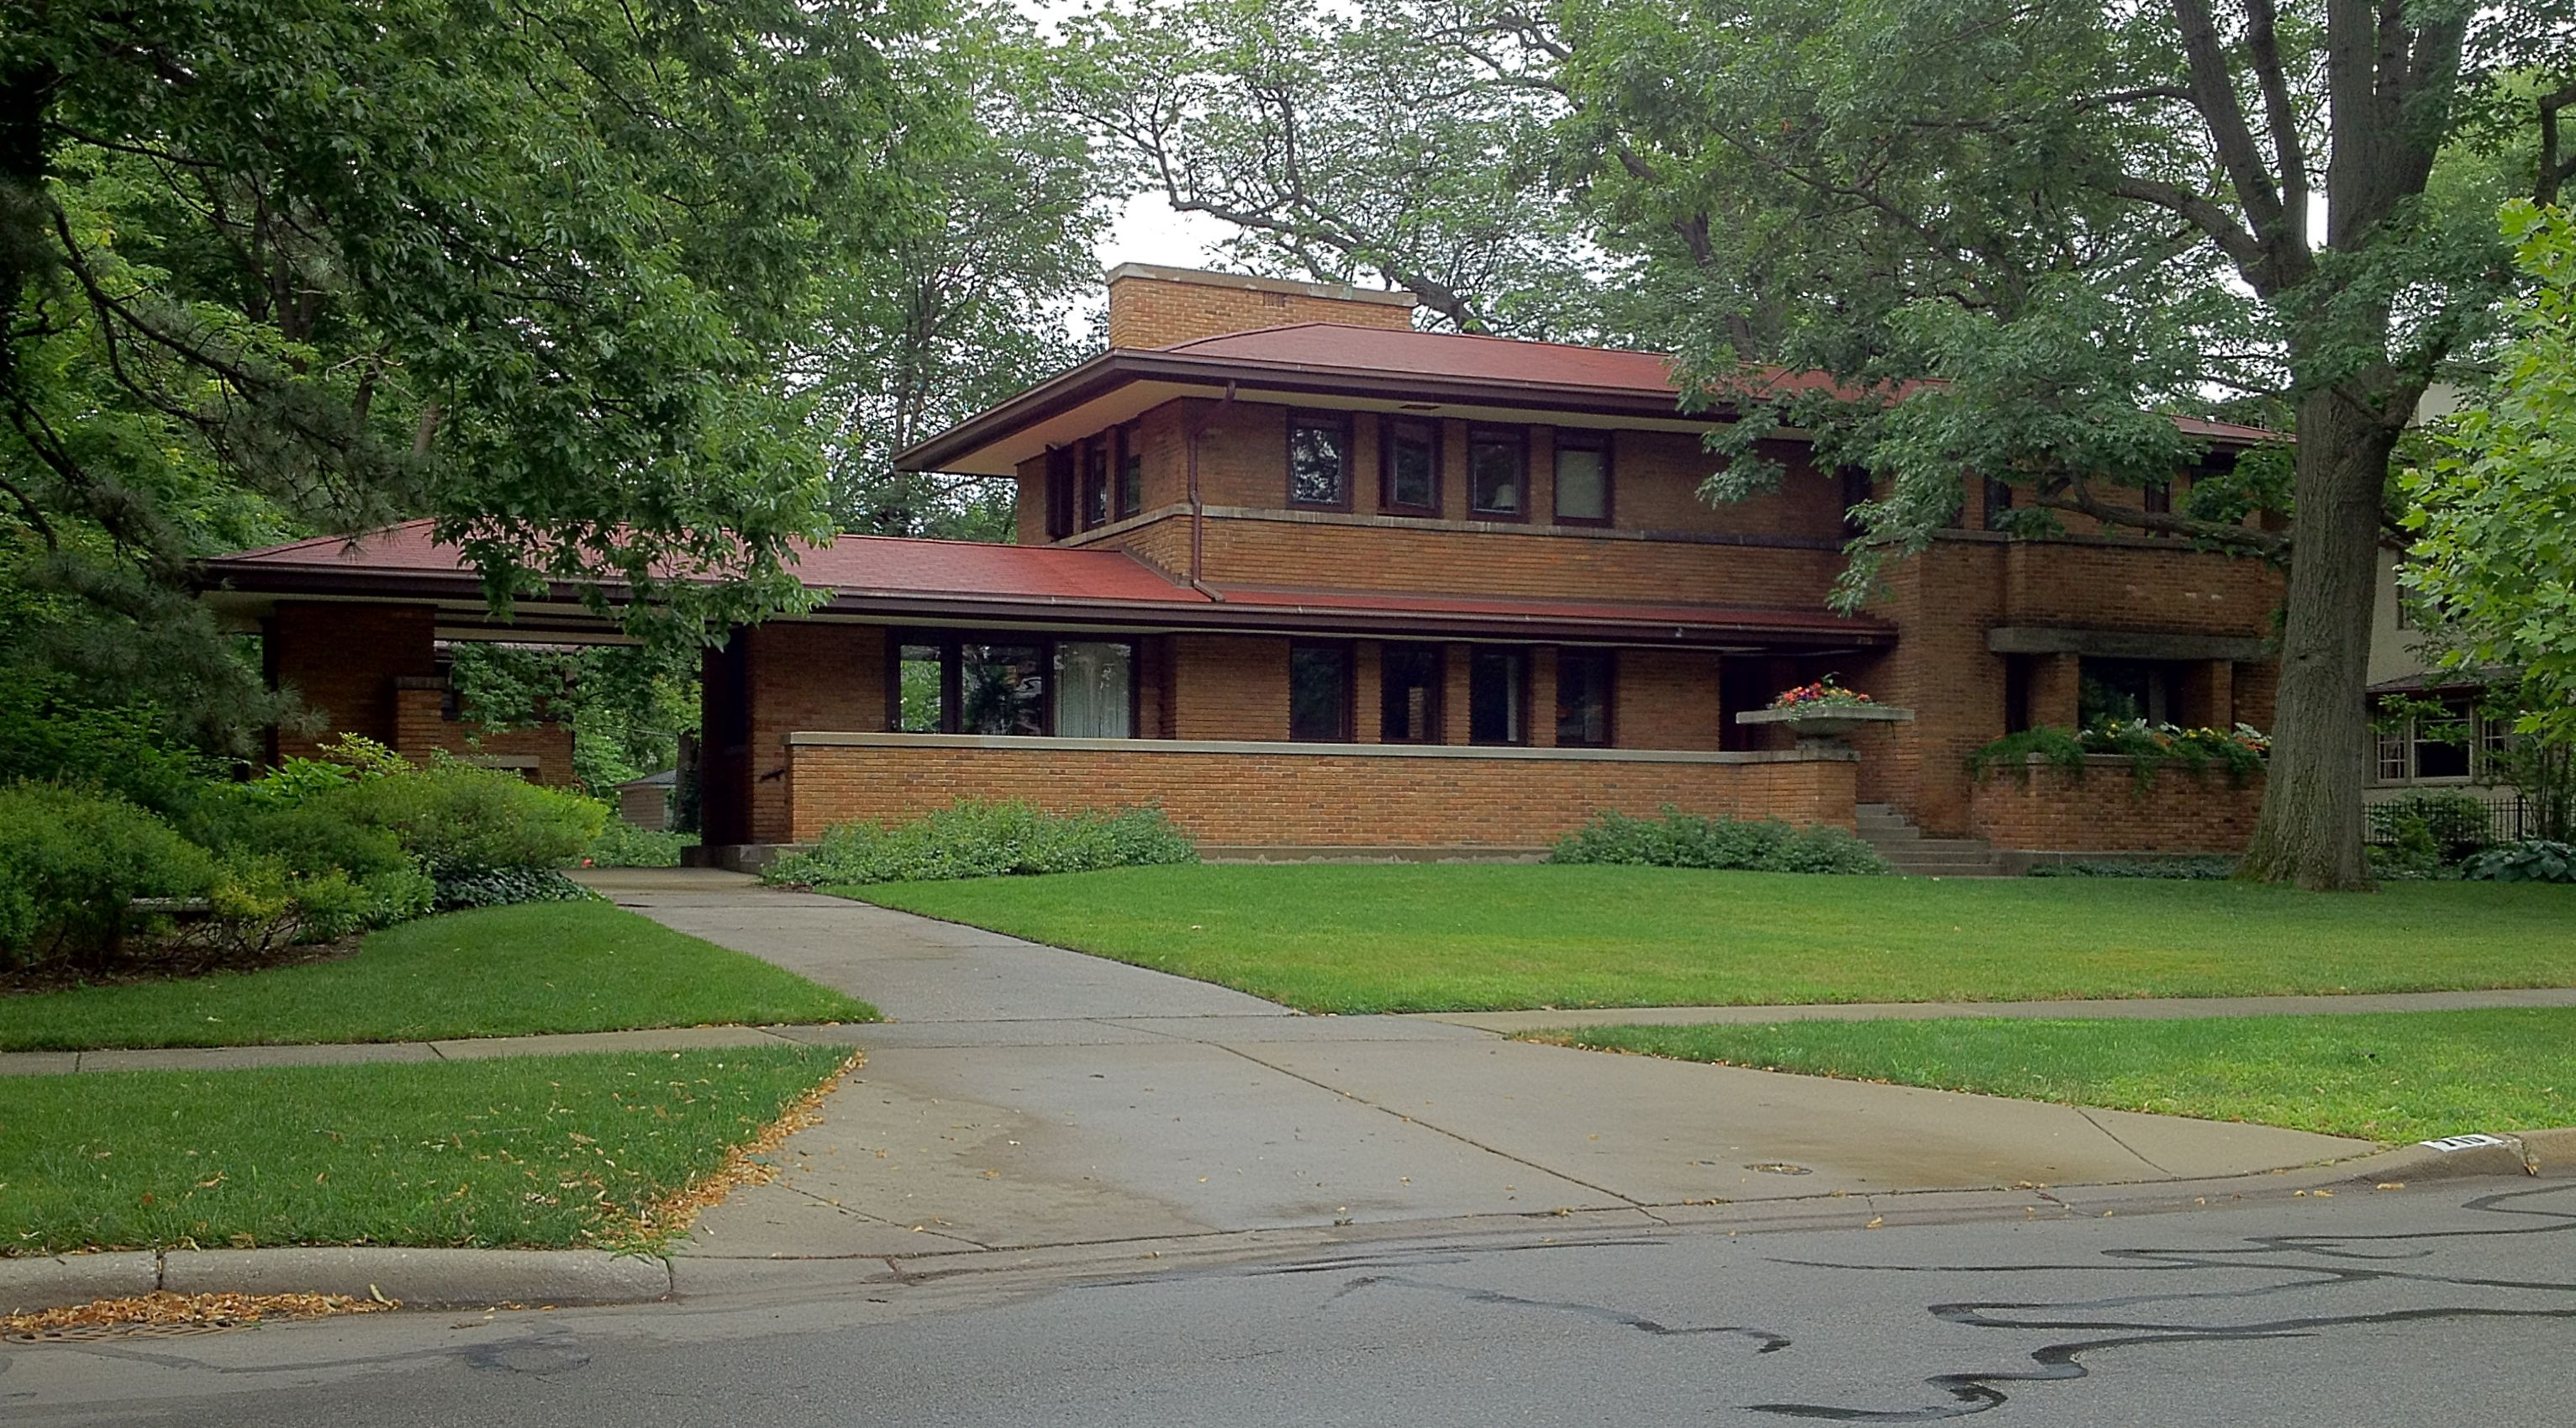 Genial Frank Lloyd Wrightu0027s Oak Park, Illinois Designs: The Prairie Period  1900 1913 | Arts And Crafts Style | Pinterest | Frank Lloyd Wright, Lloyd  Wright And Oak ...